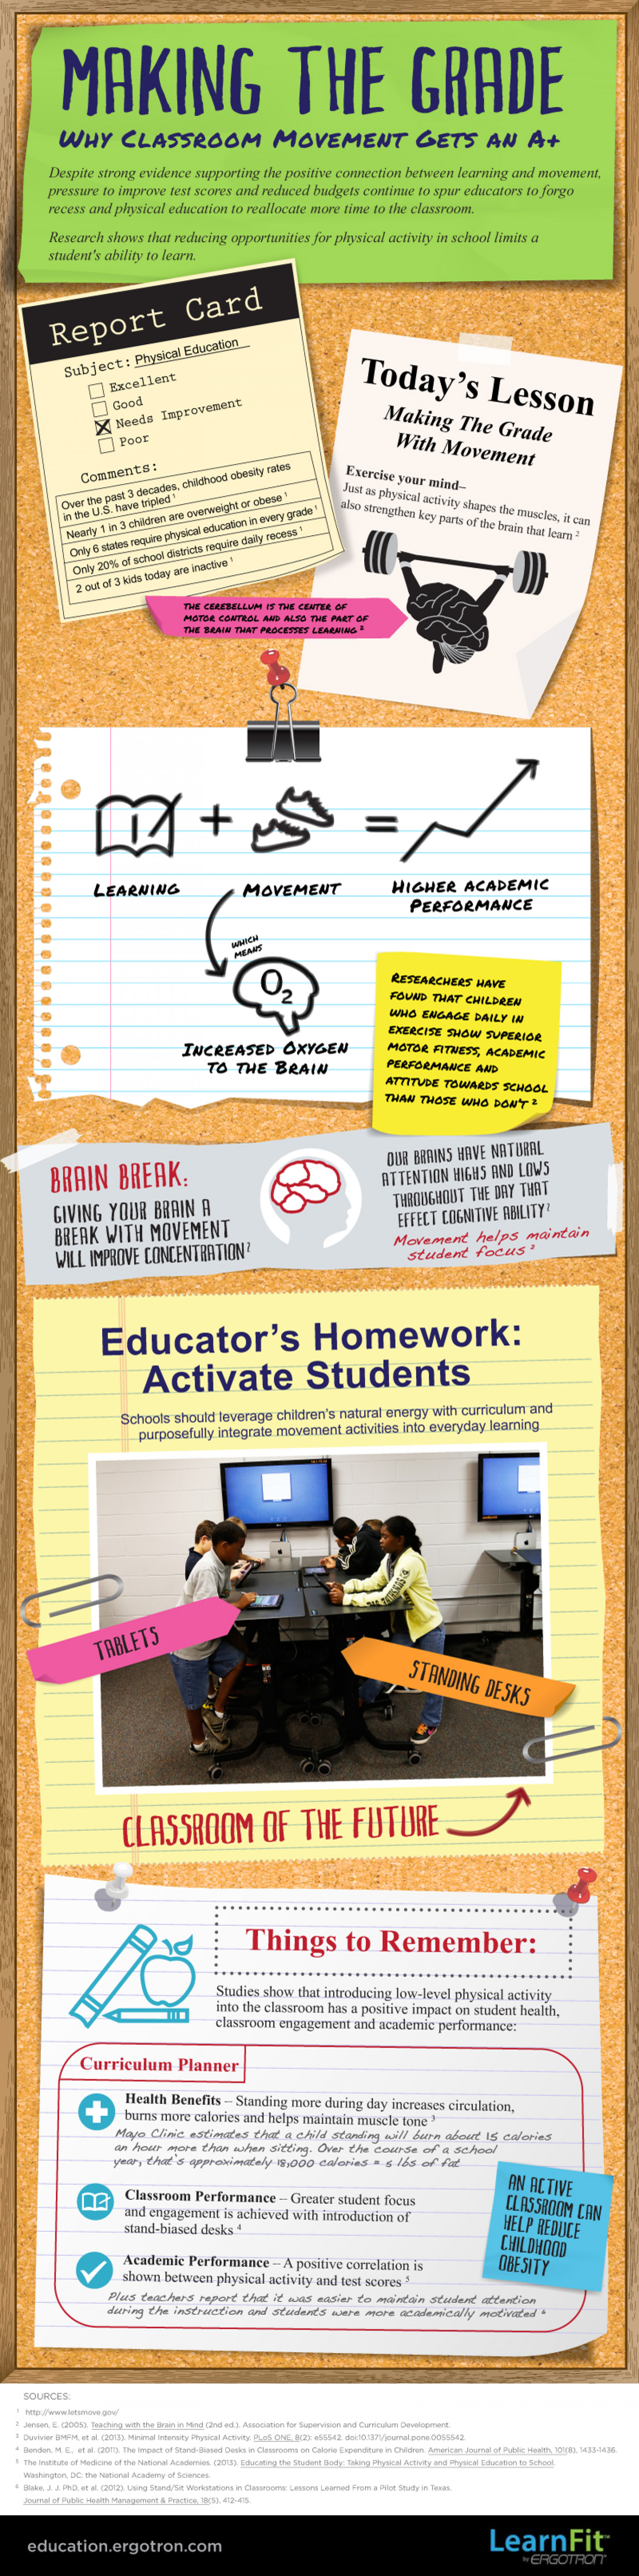 Making the Grade: Why Classroom Movement Gets an A+ Infographic